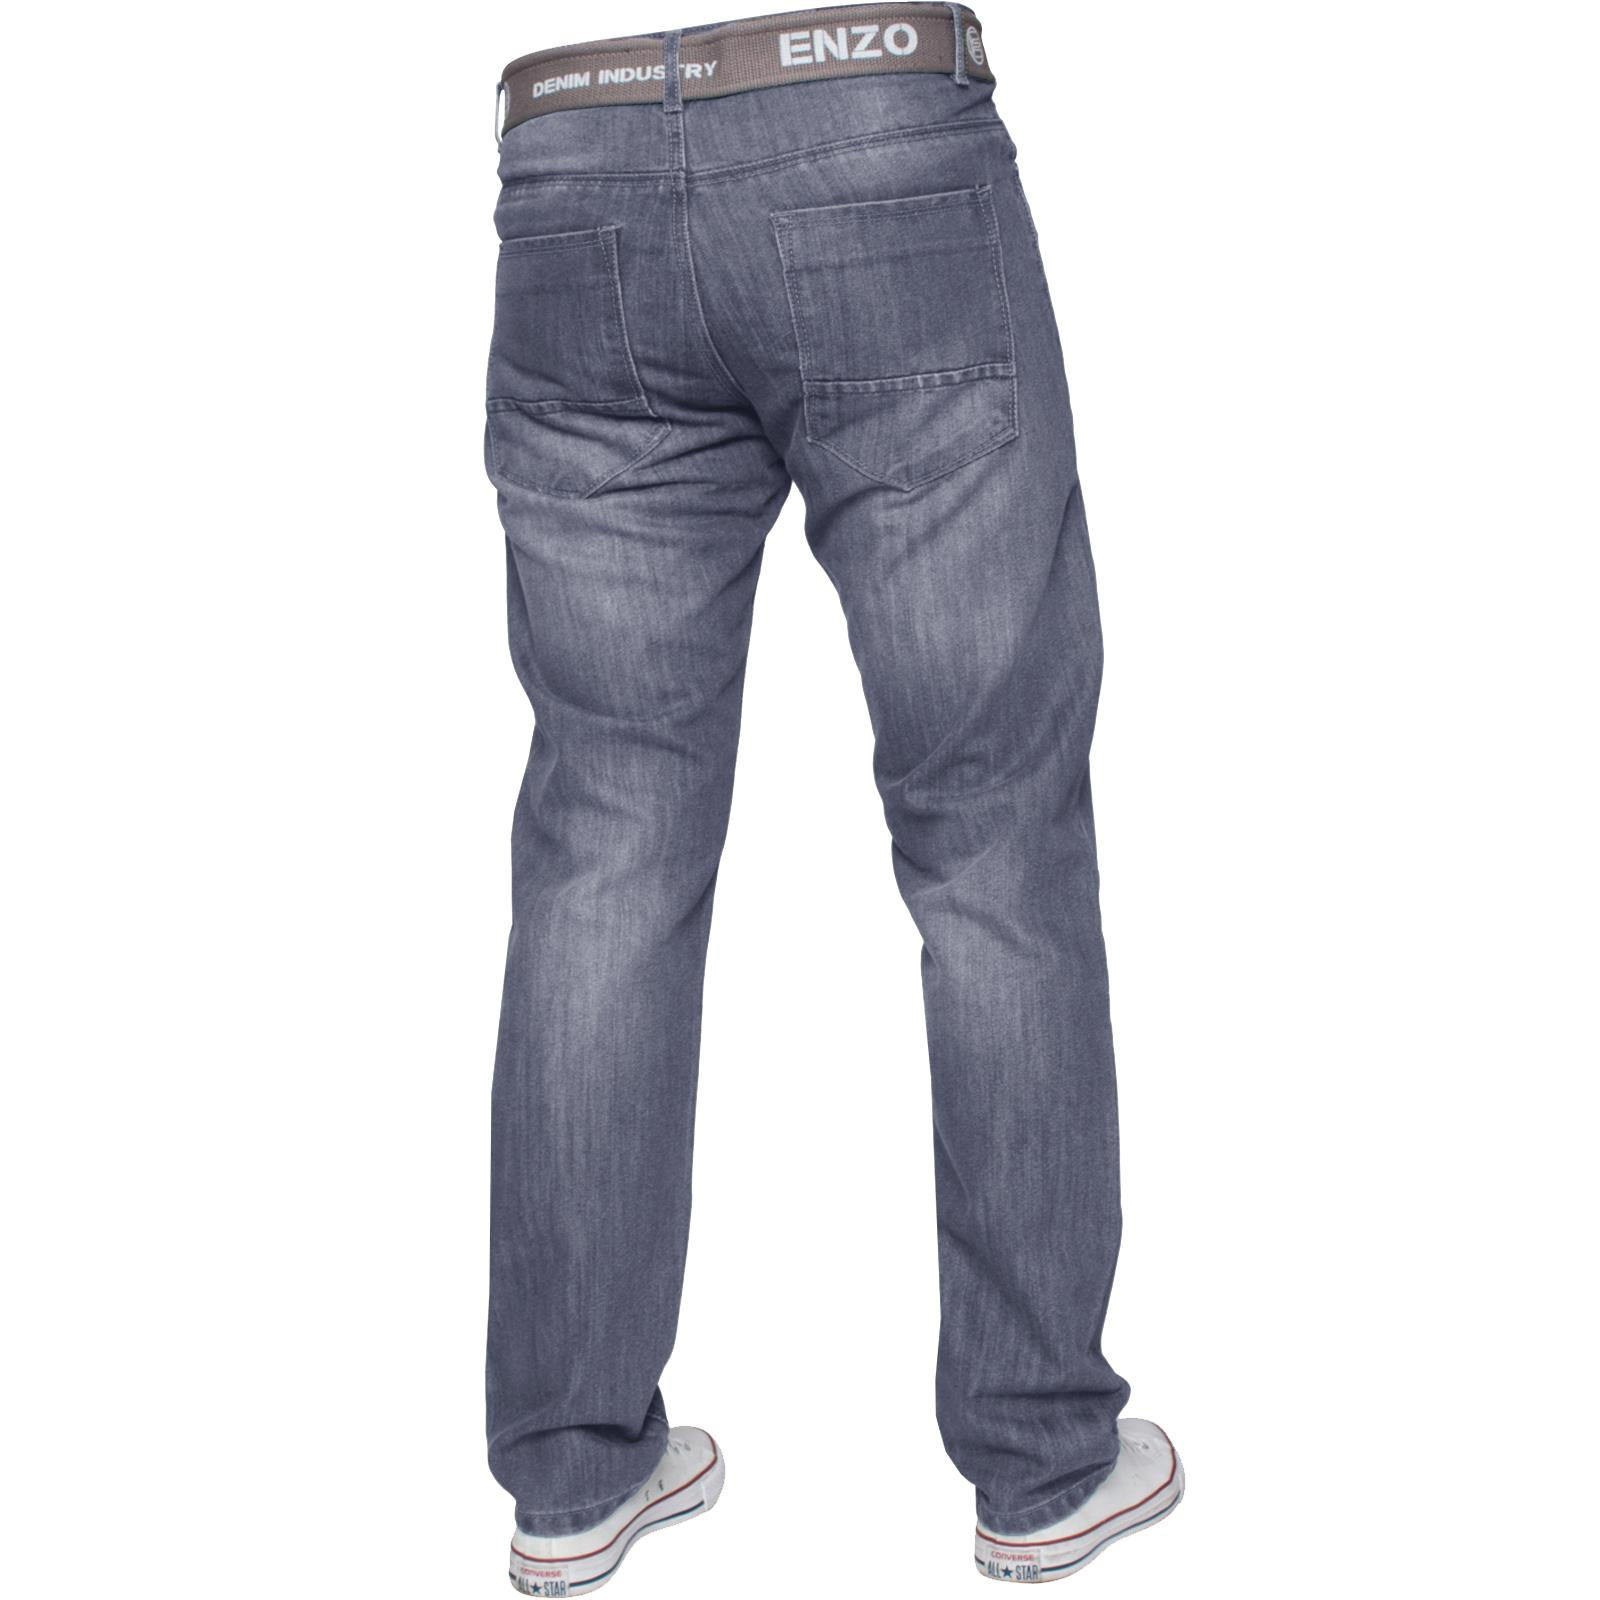 Enzo-Mens-Straight-Leg-Jeans-Regular-Fit-Denim-Pants-Big-Tall-All-Waists-Sizes thumbnail 14